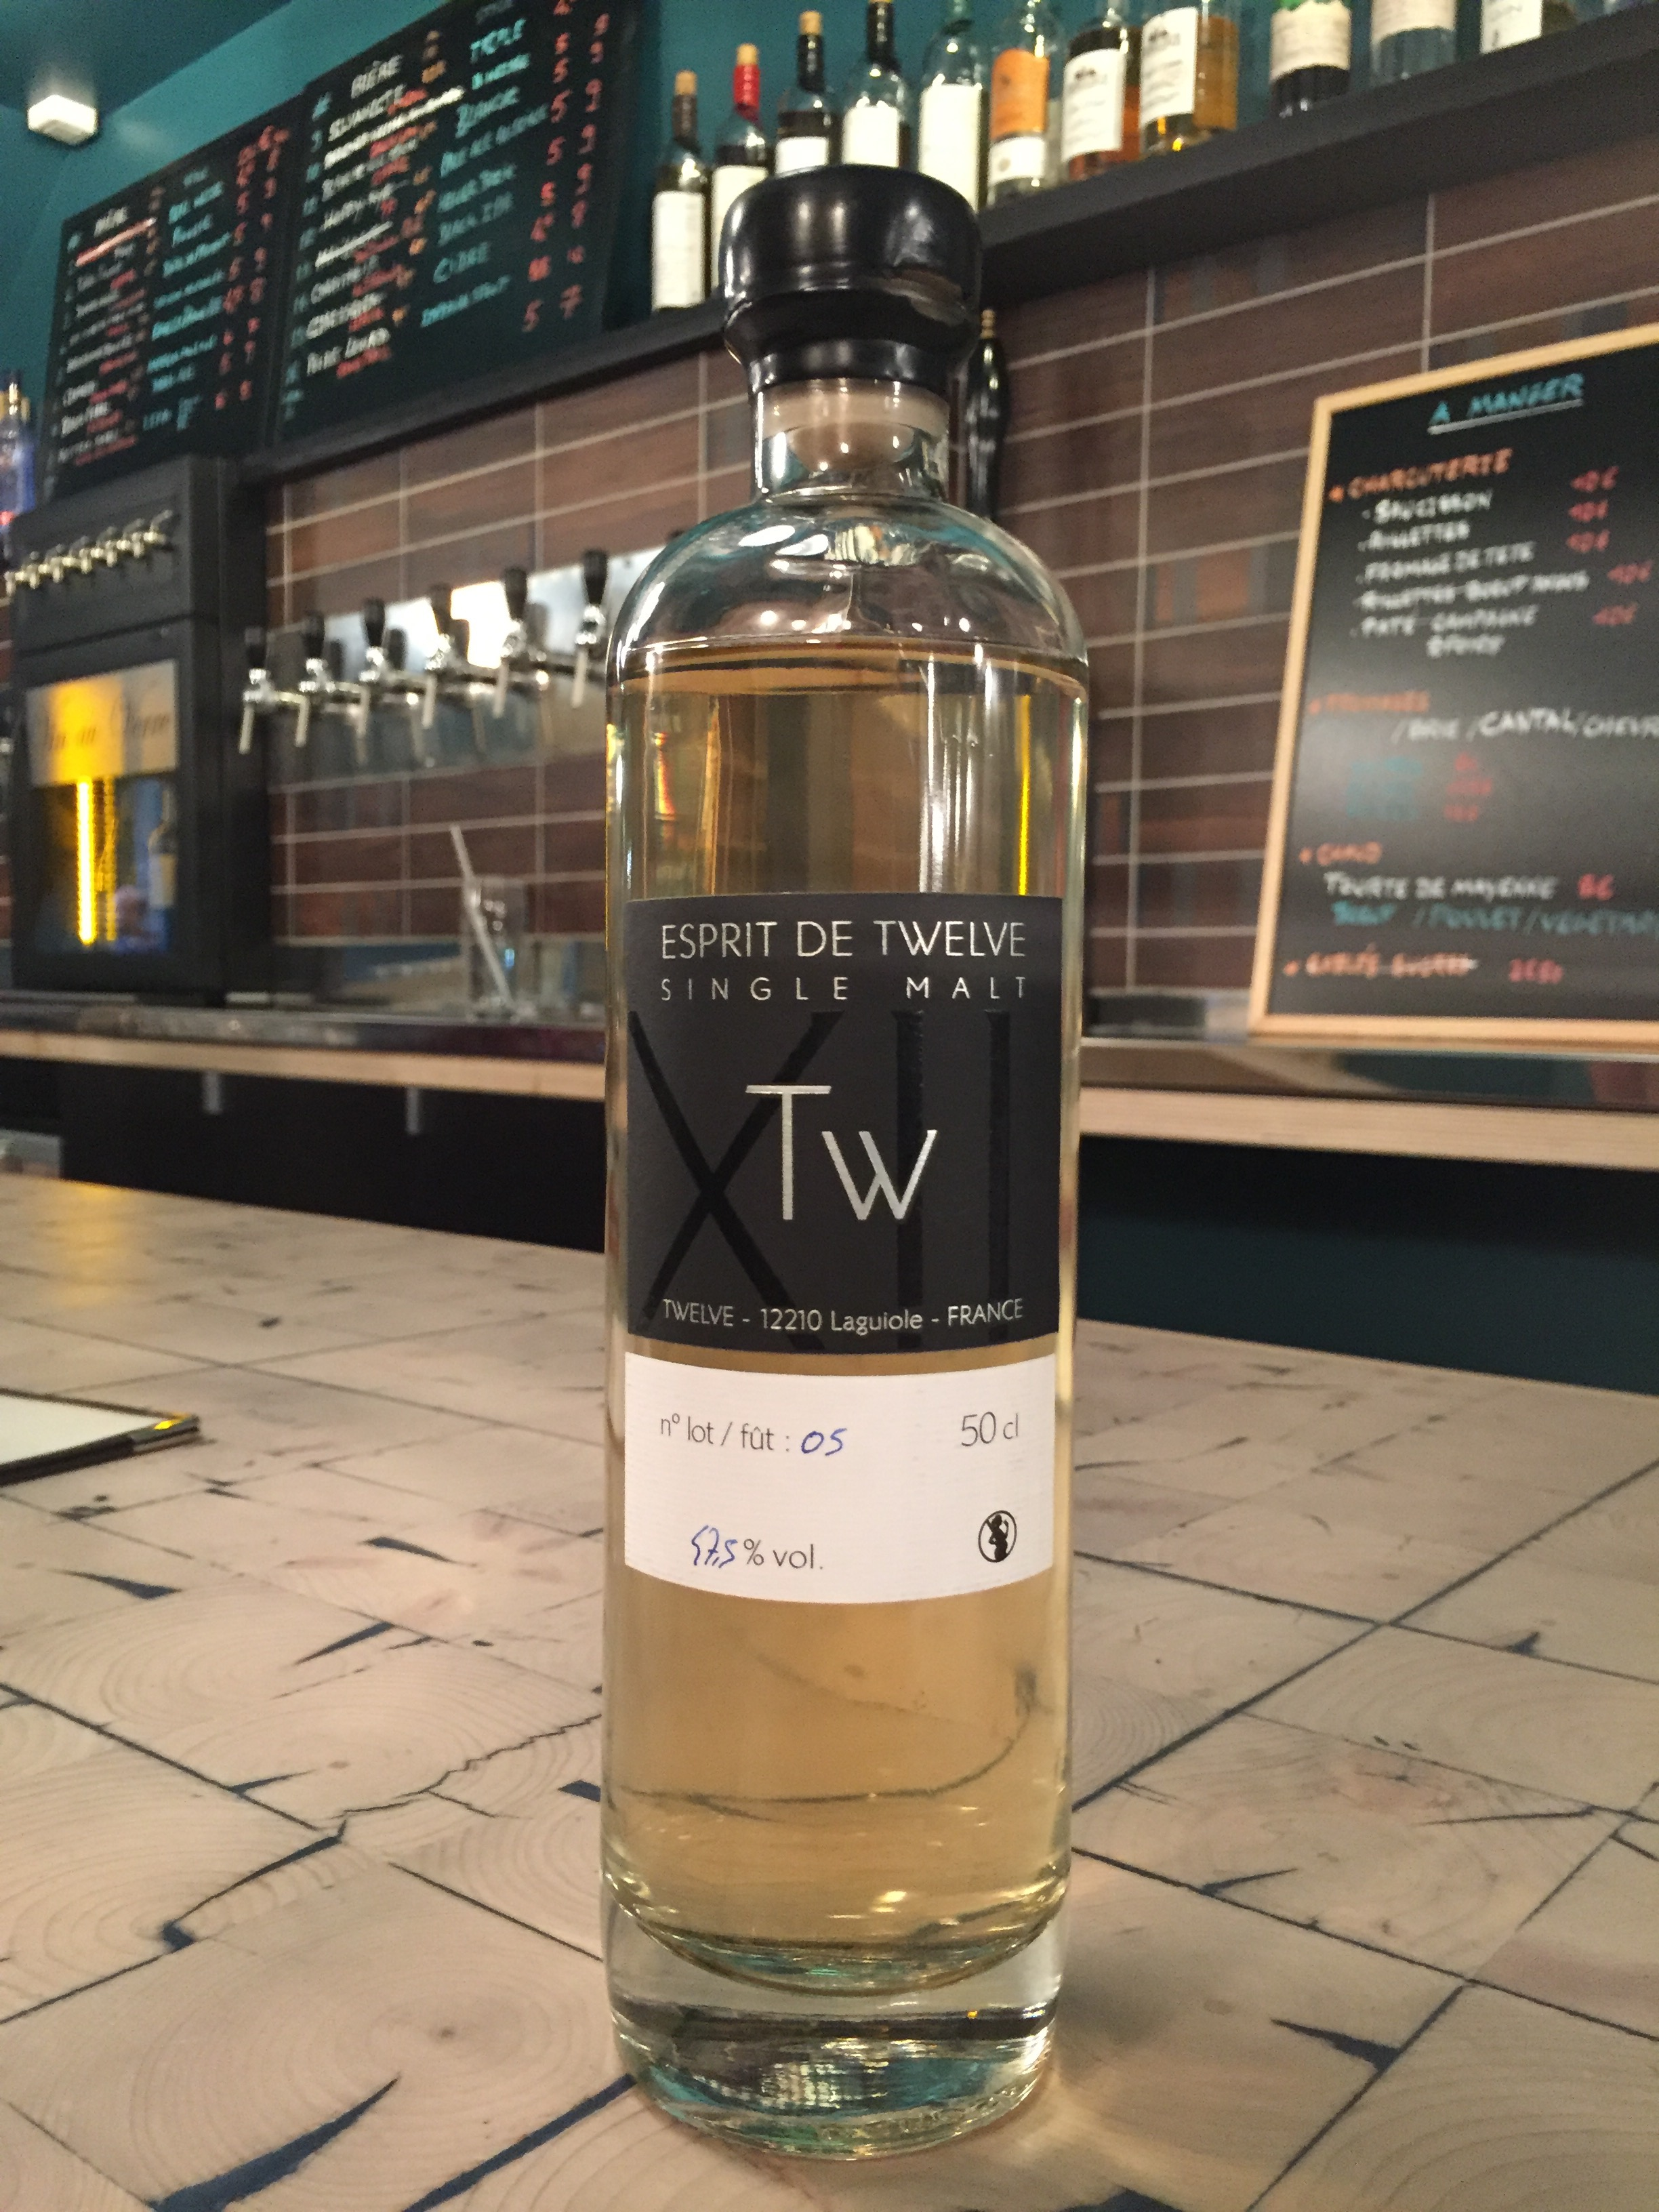 Esprit de Single Malt, Twelve, Laguiole, Aubrac, Christian Bec, Patrice Imbaud, Florent Caston, Robin Cassagne, Aveyron, tourbe, whisky français, french whisky, France, distillerie